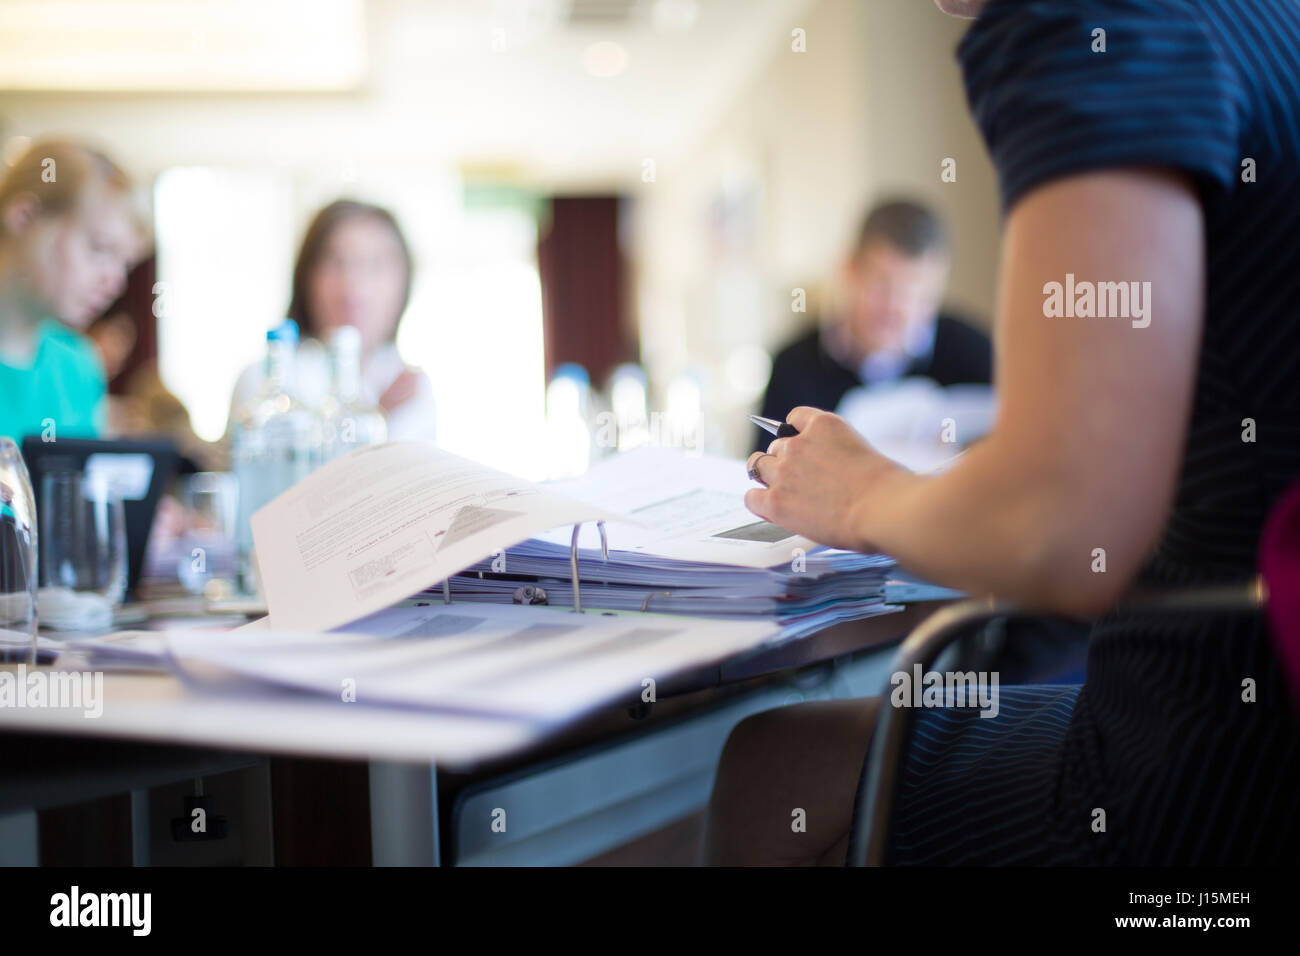 x4 People in a meeting - Stock Image